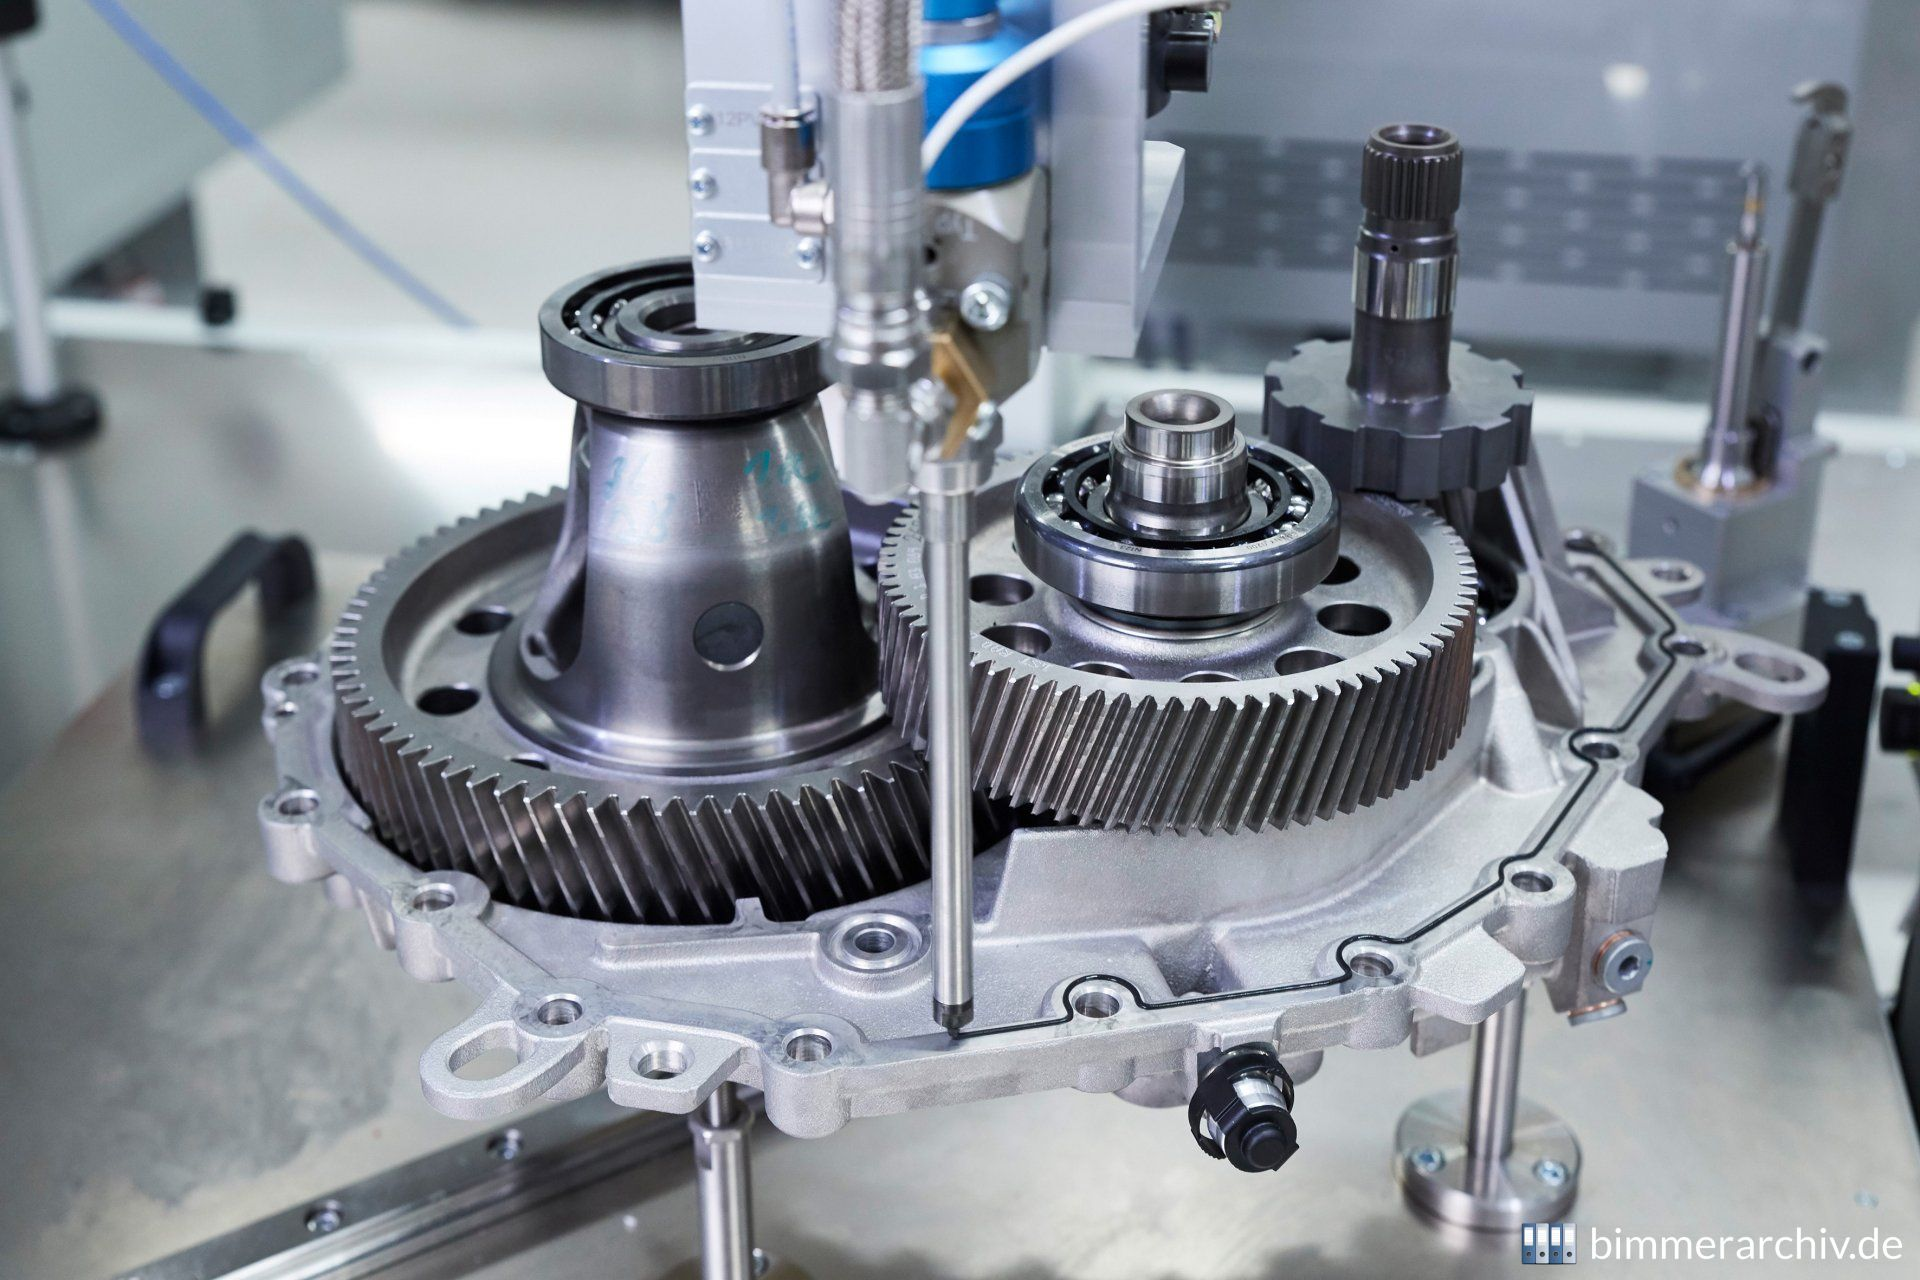 Prototype production fifth-generation e-drive train